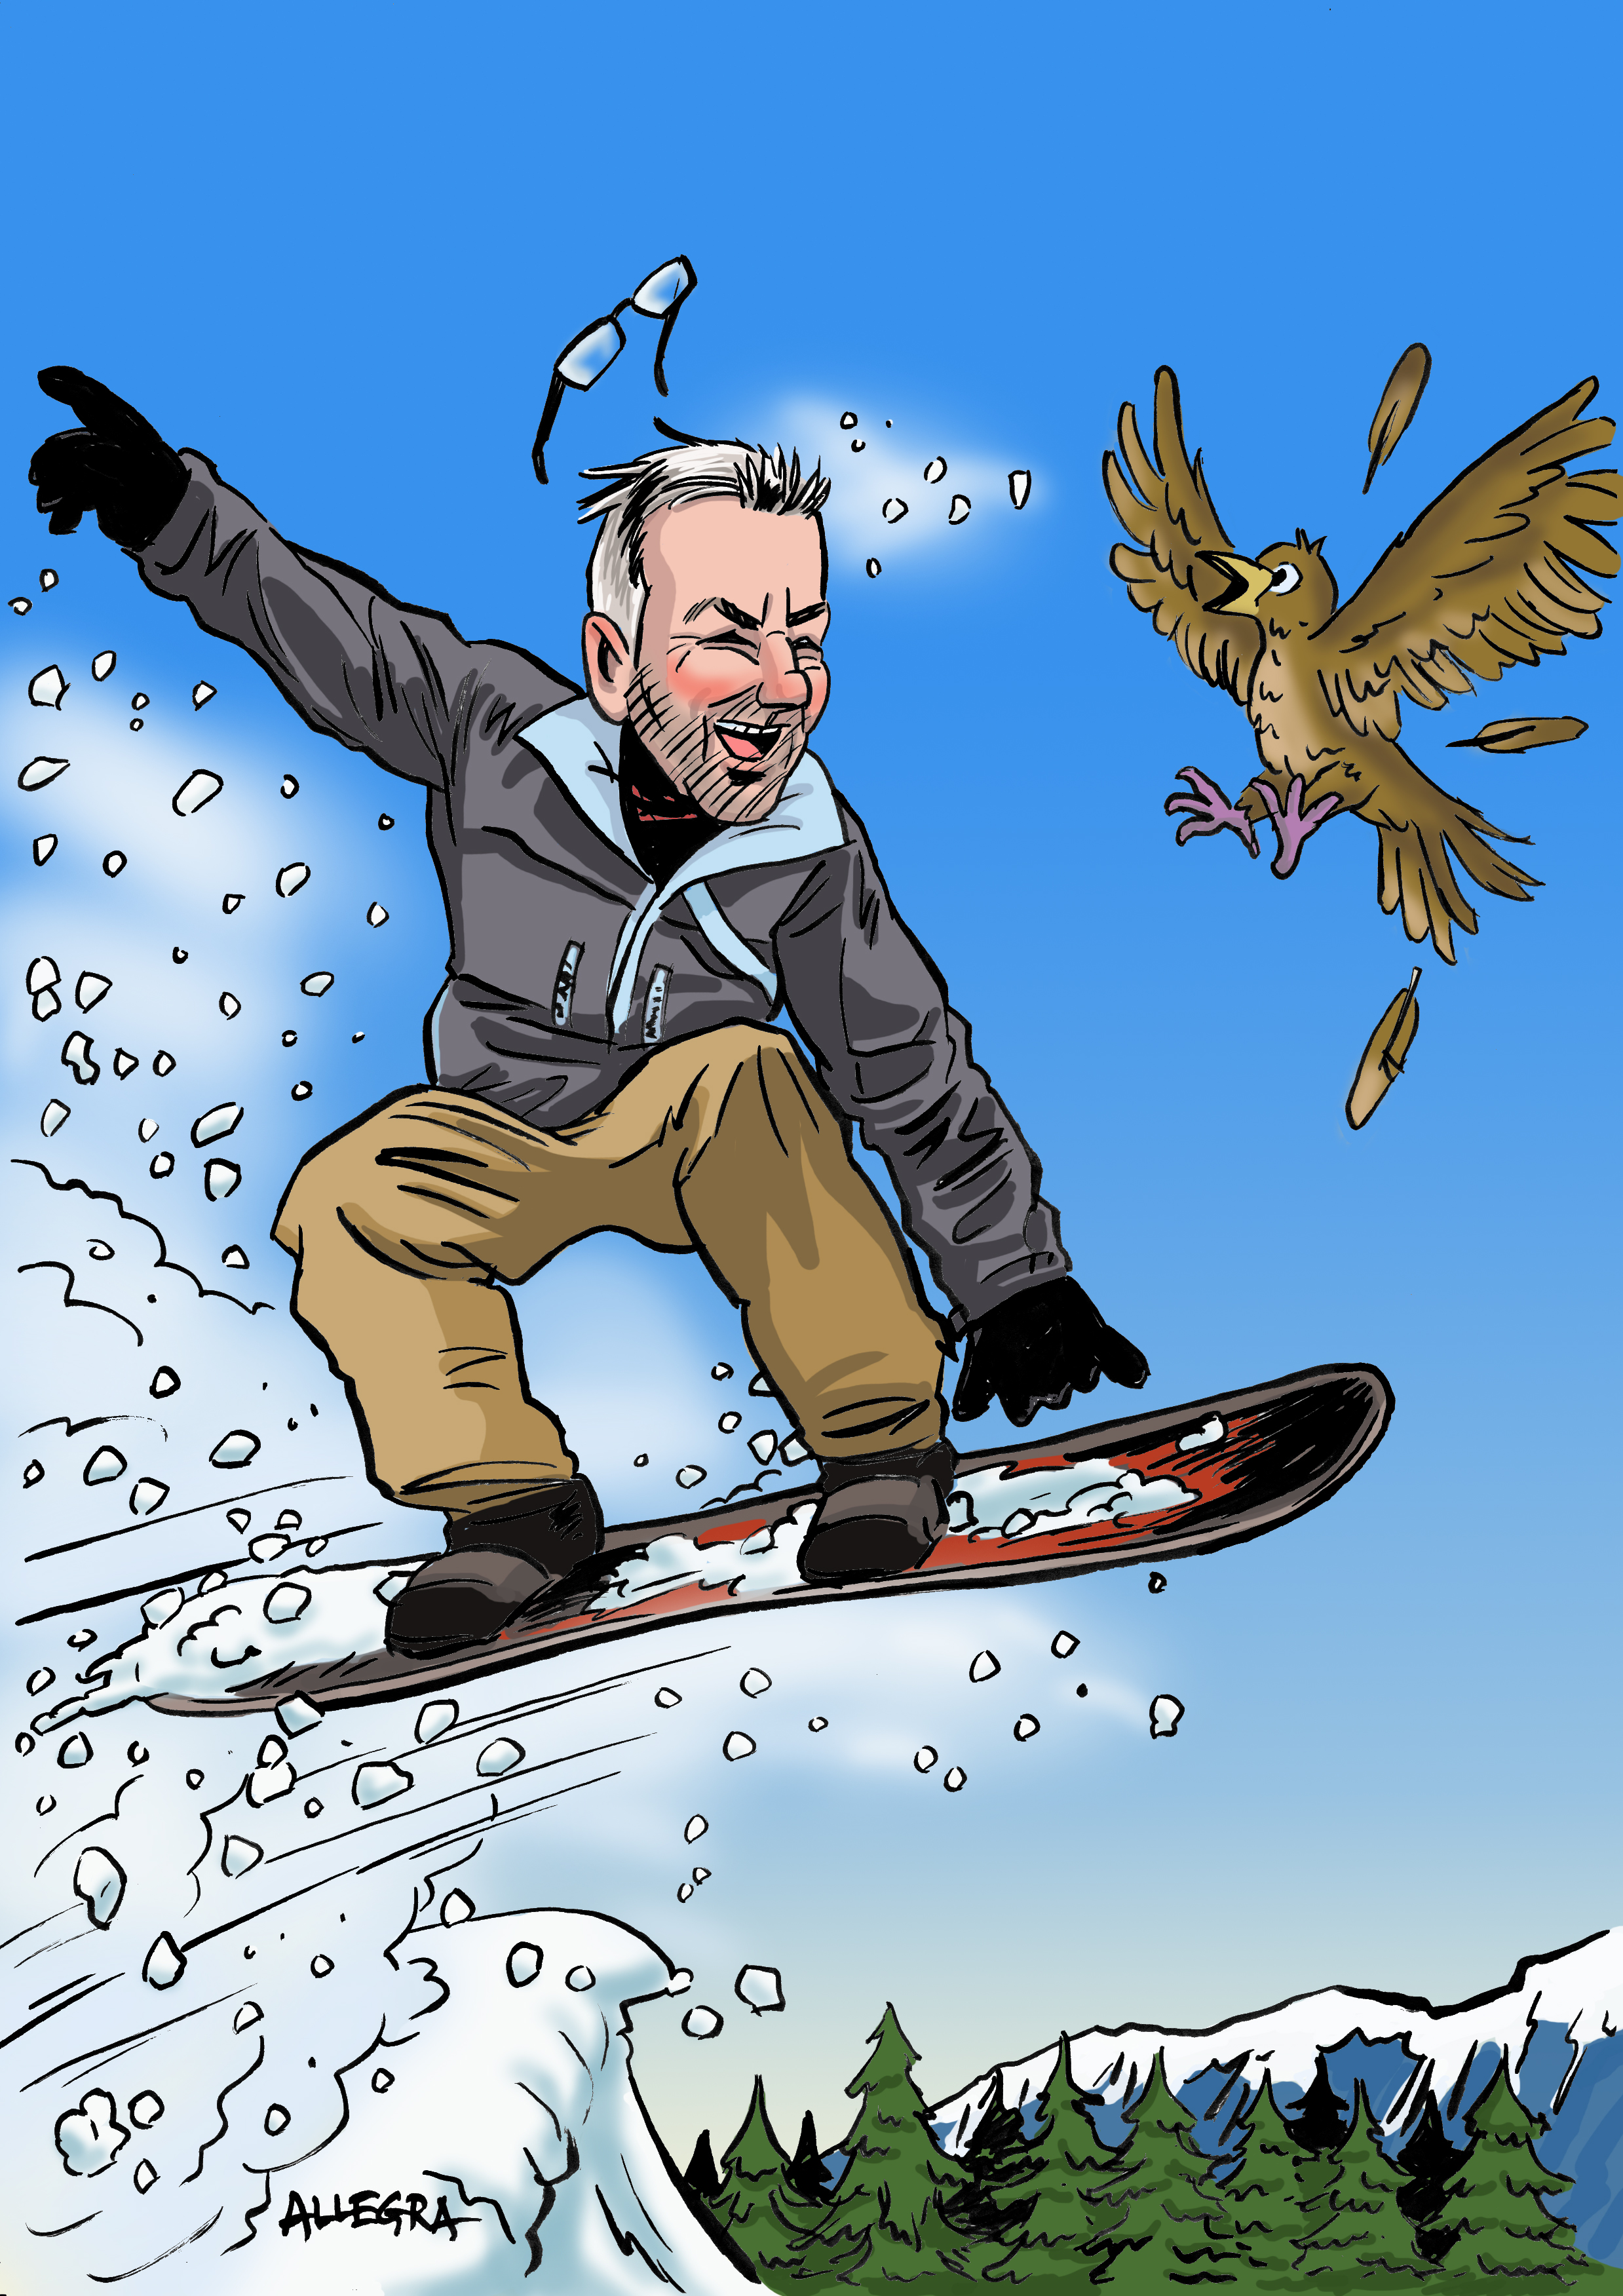 Snowboardy-Pete